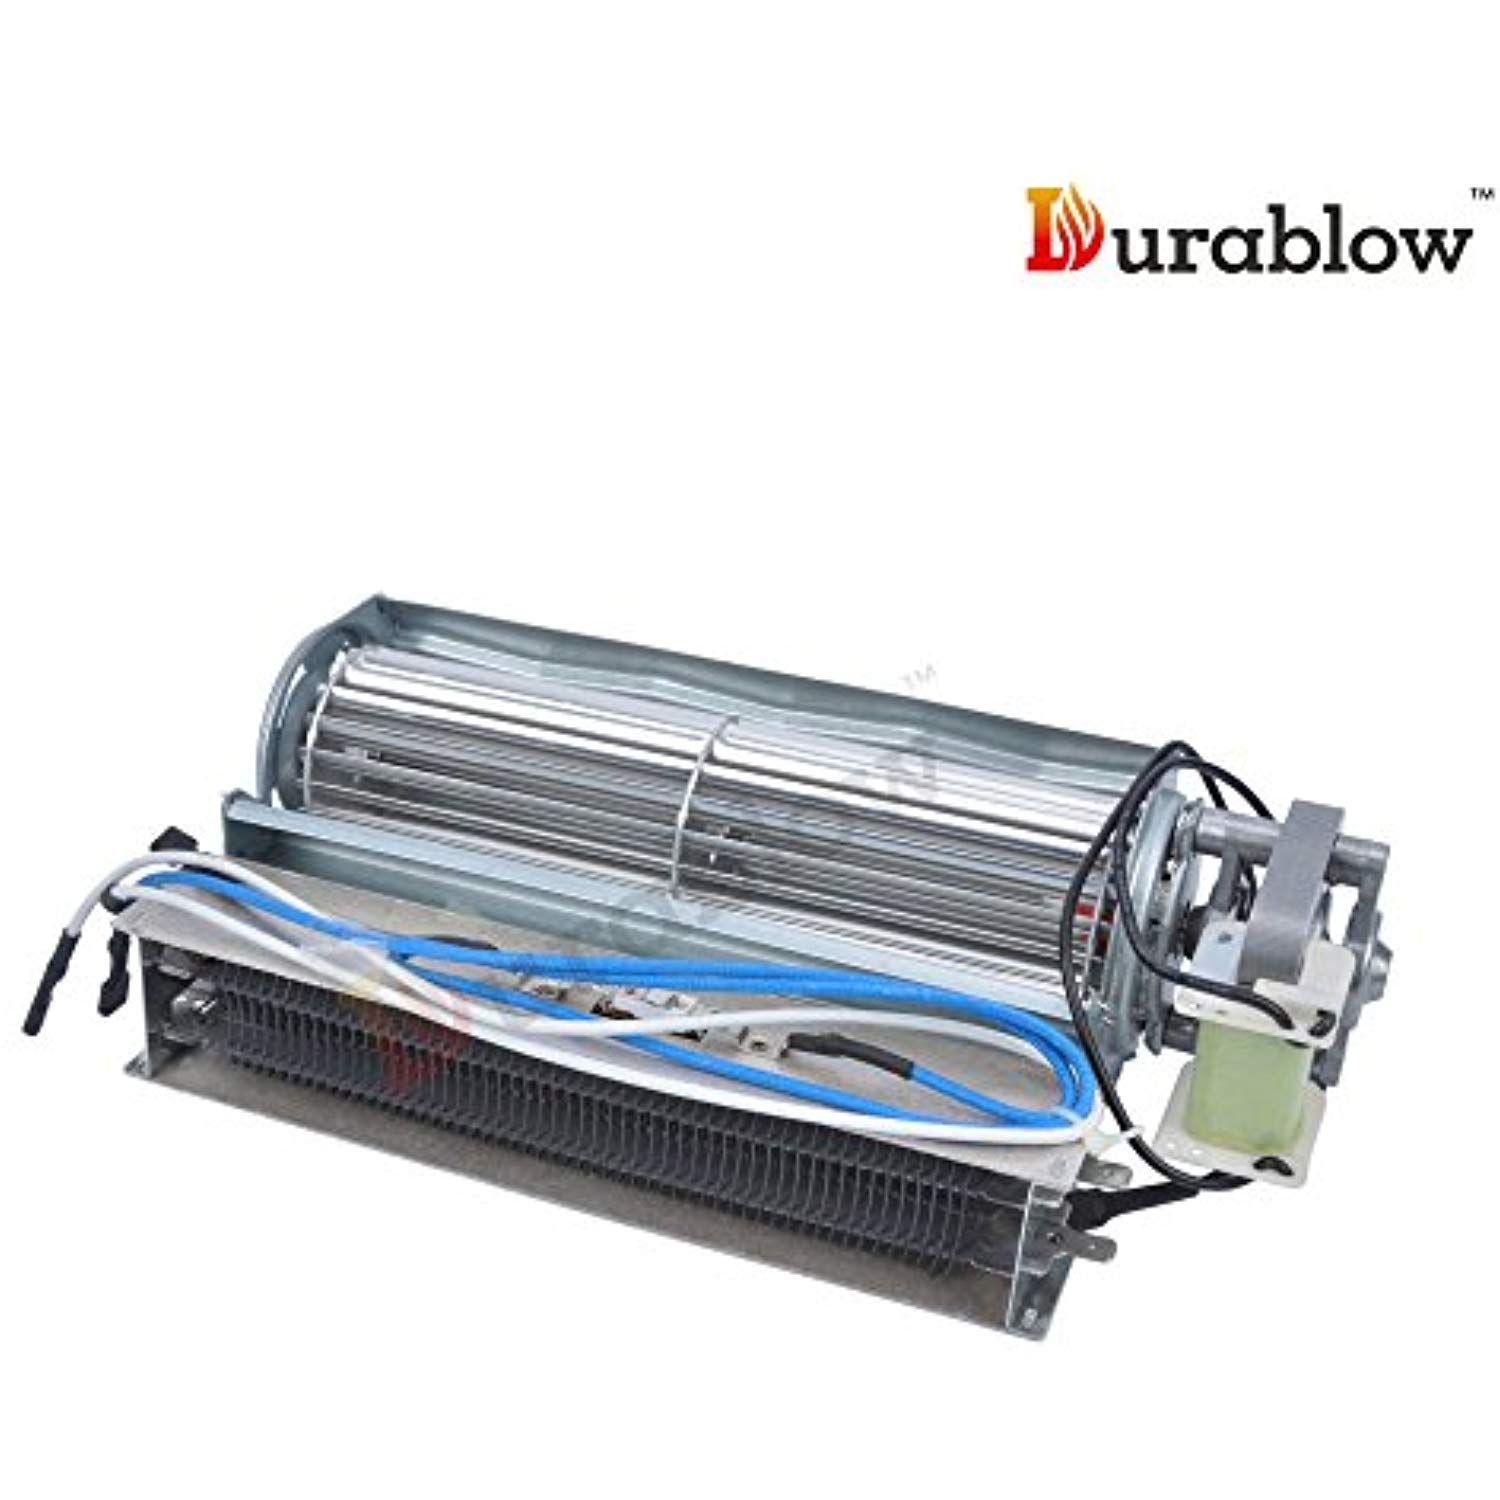 Payandpack Durablow Electric Fireplace Replacement Blower Fan Unit